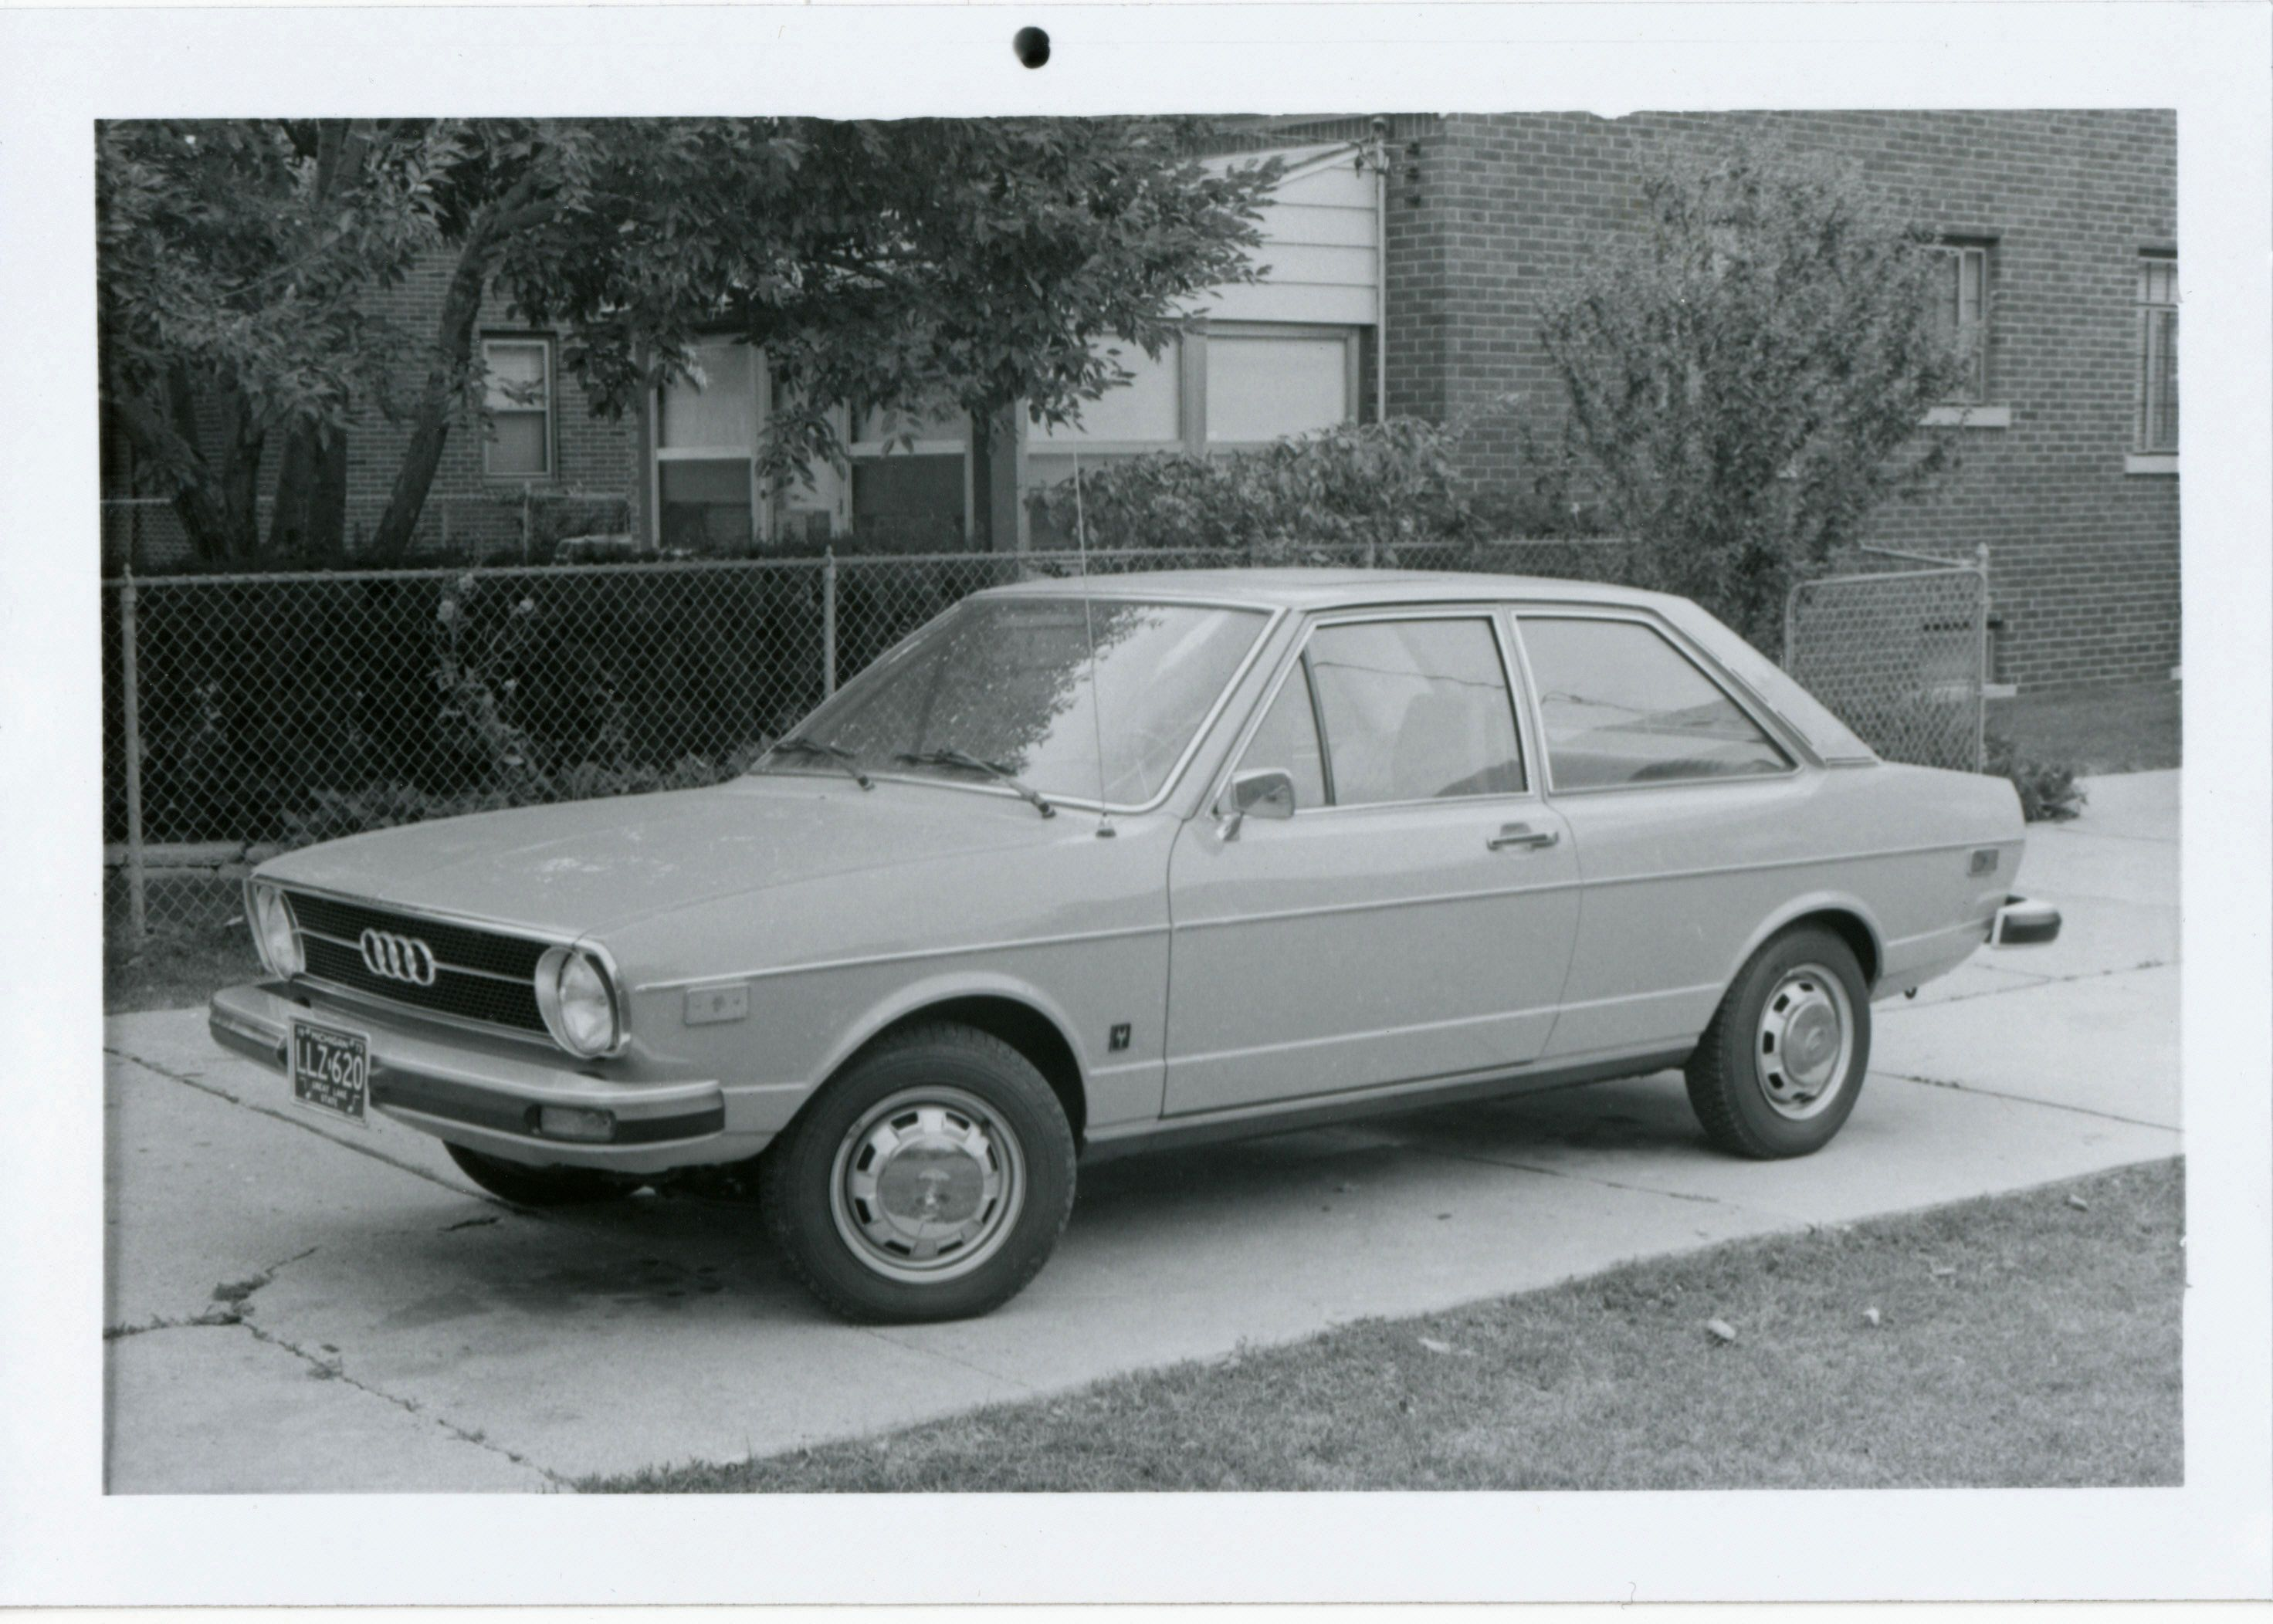 Sportiest car to drive, my 1974 Audi Fox. Great gas mileage too, but ...